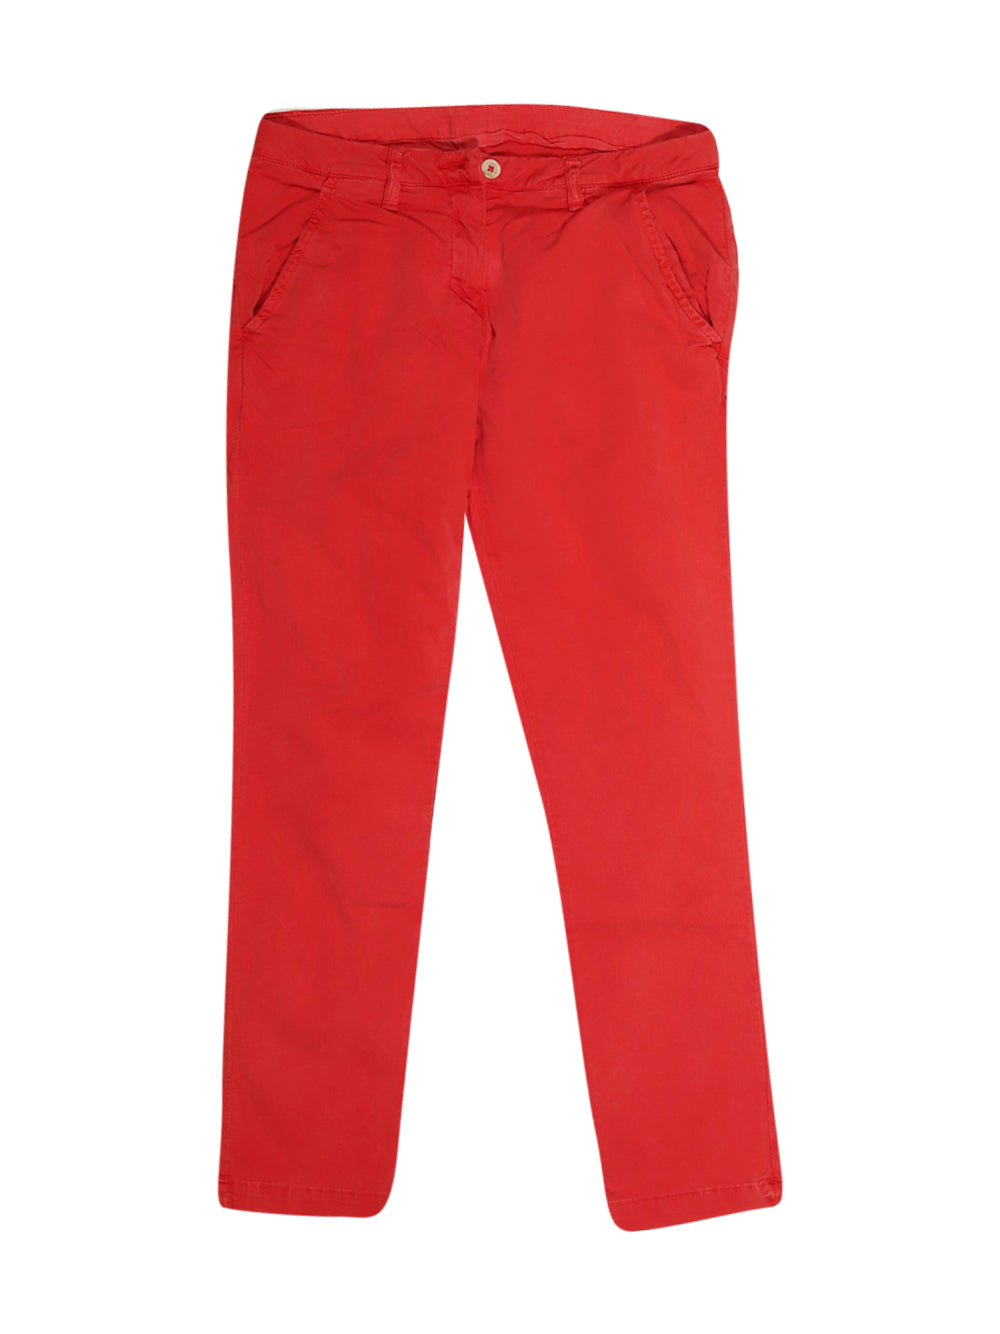 Front photo of Preloved Kappa Red Woman's trousers - size 6/XS